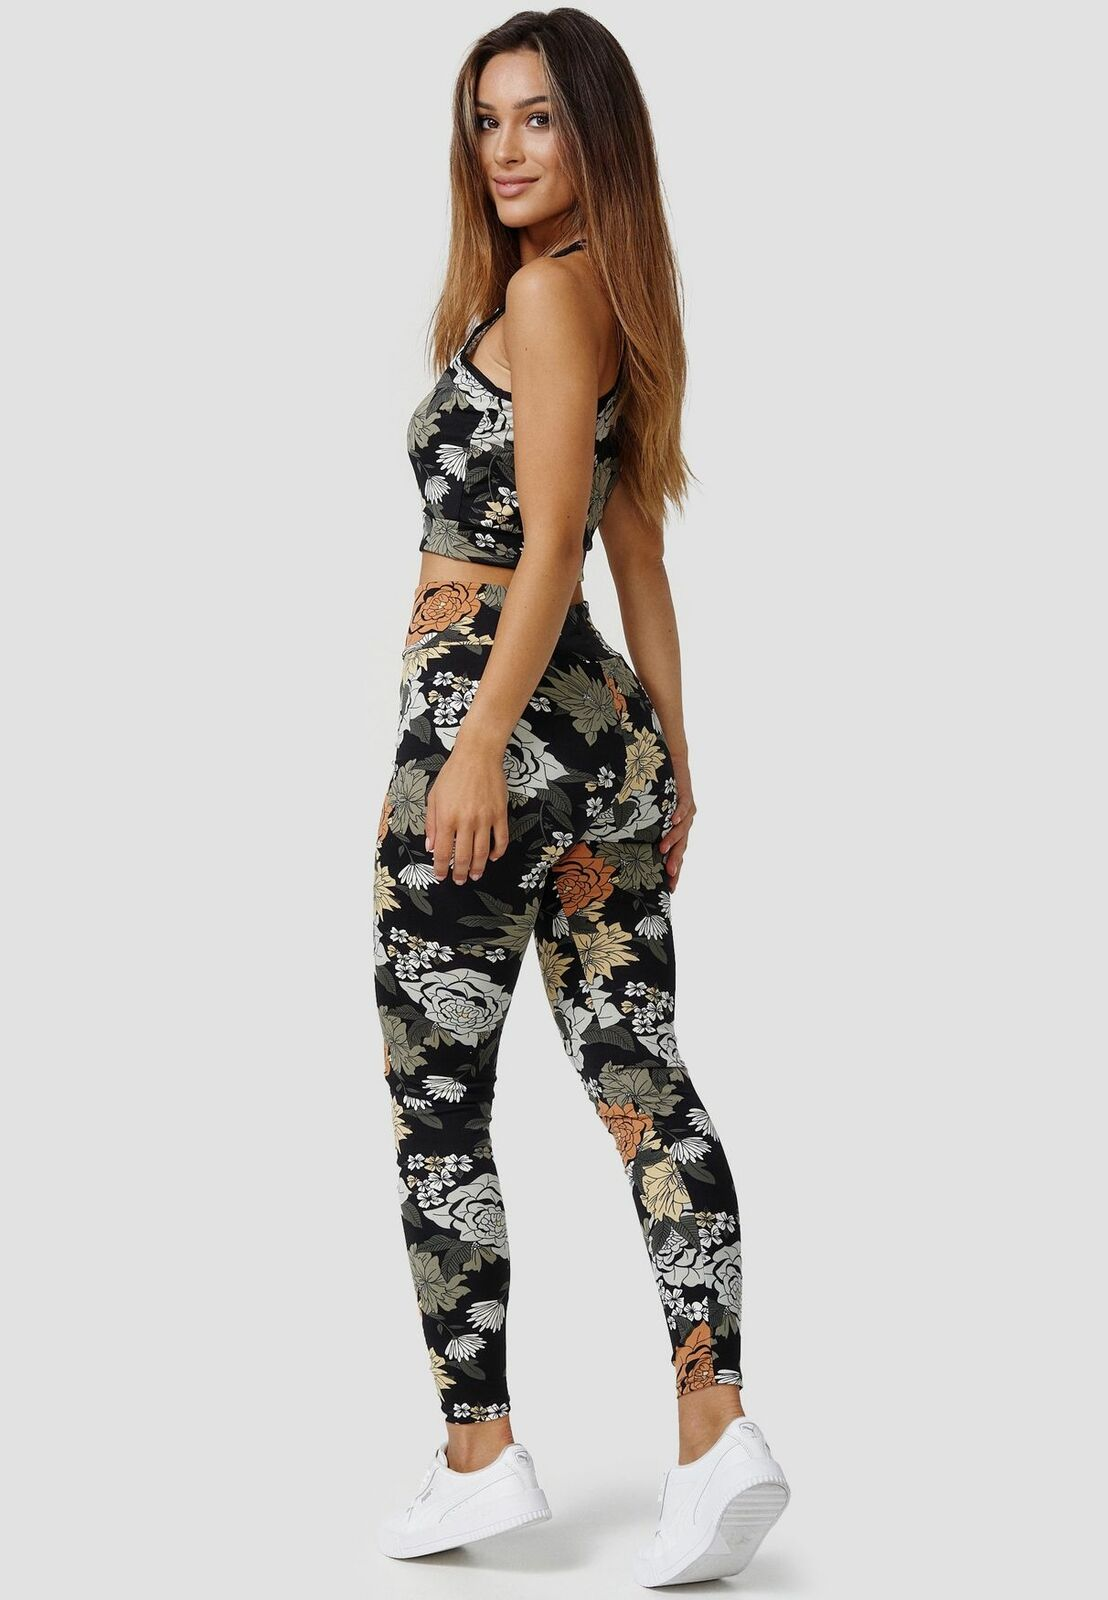 Womens Tracksuit Stretch Racerback Top & Leggings Floral Print Fitness Outfit